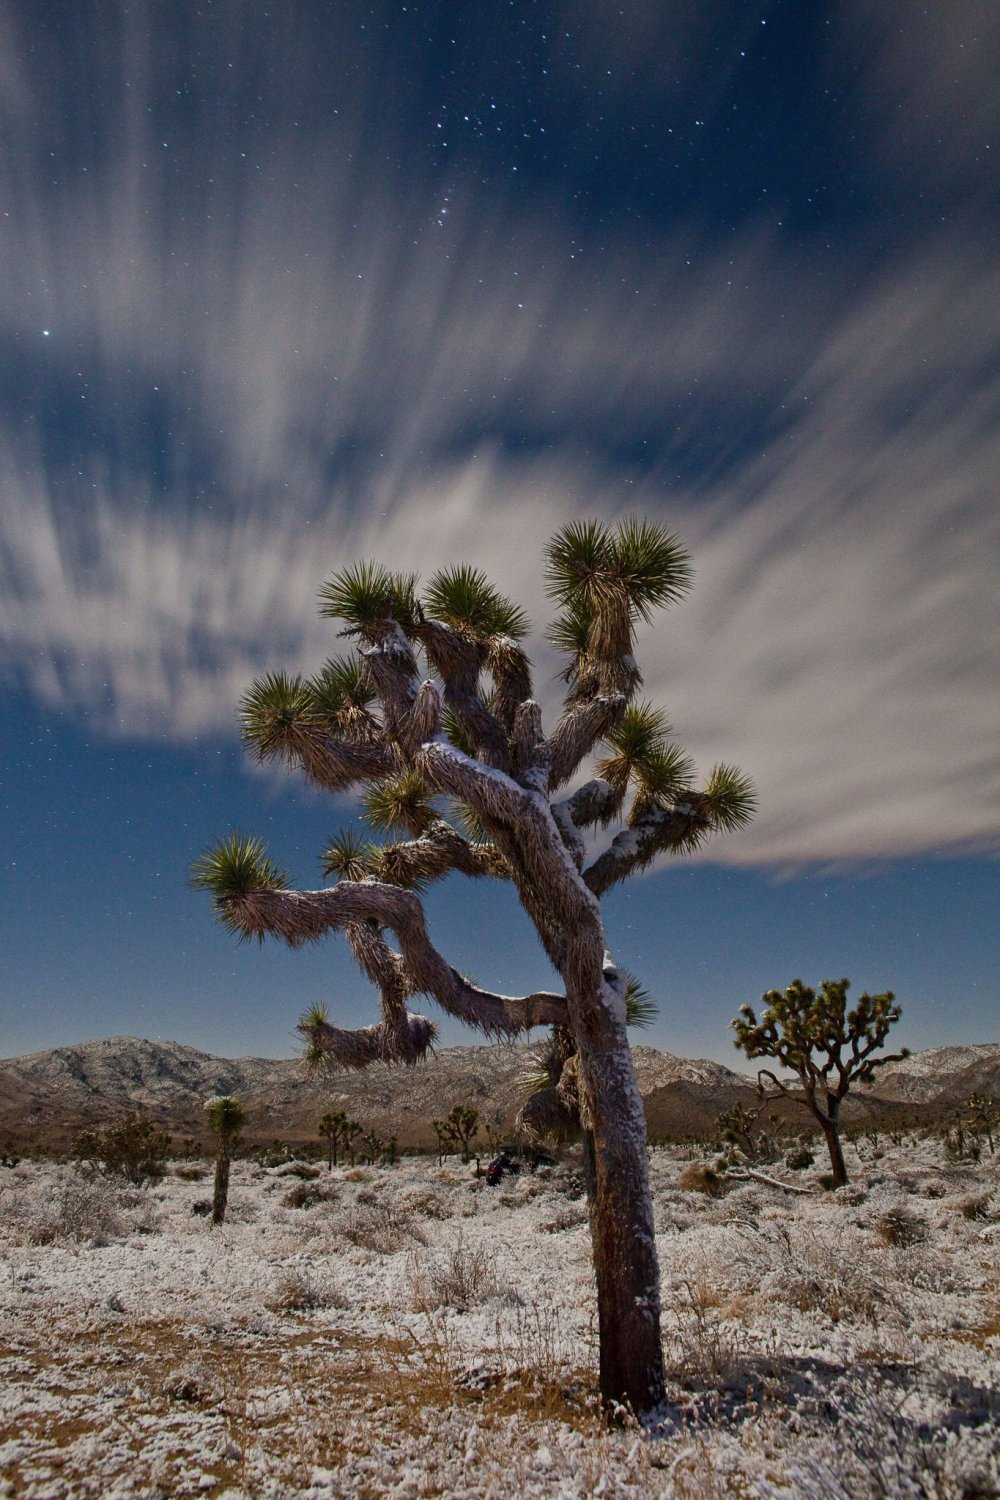 Snow decorates the desert under a dreamy night sky at California's Joshua Tree National Park. Photo by Craig Schoenbaum. Tweeted by the US Department of the Interior, 12/20/16.